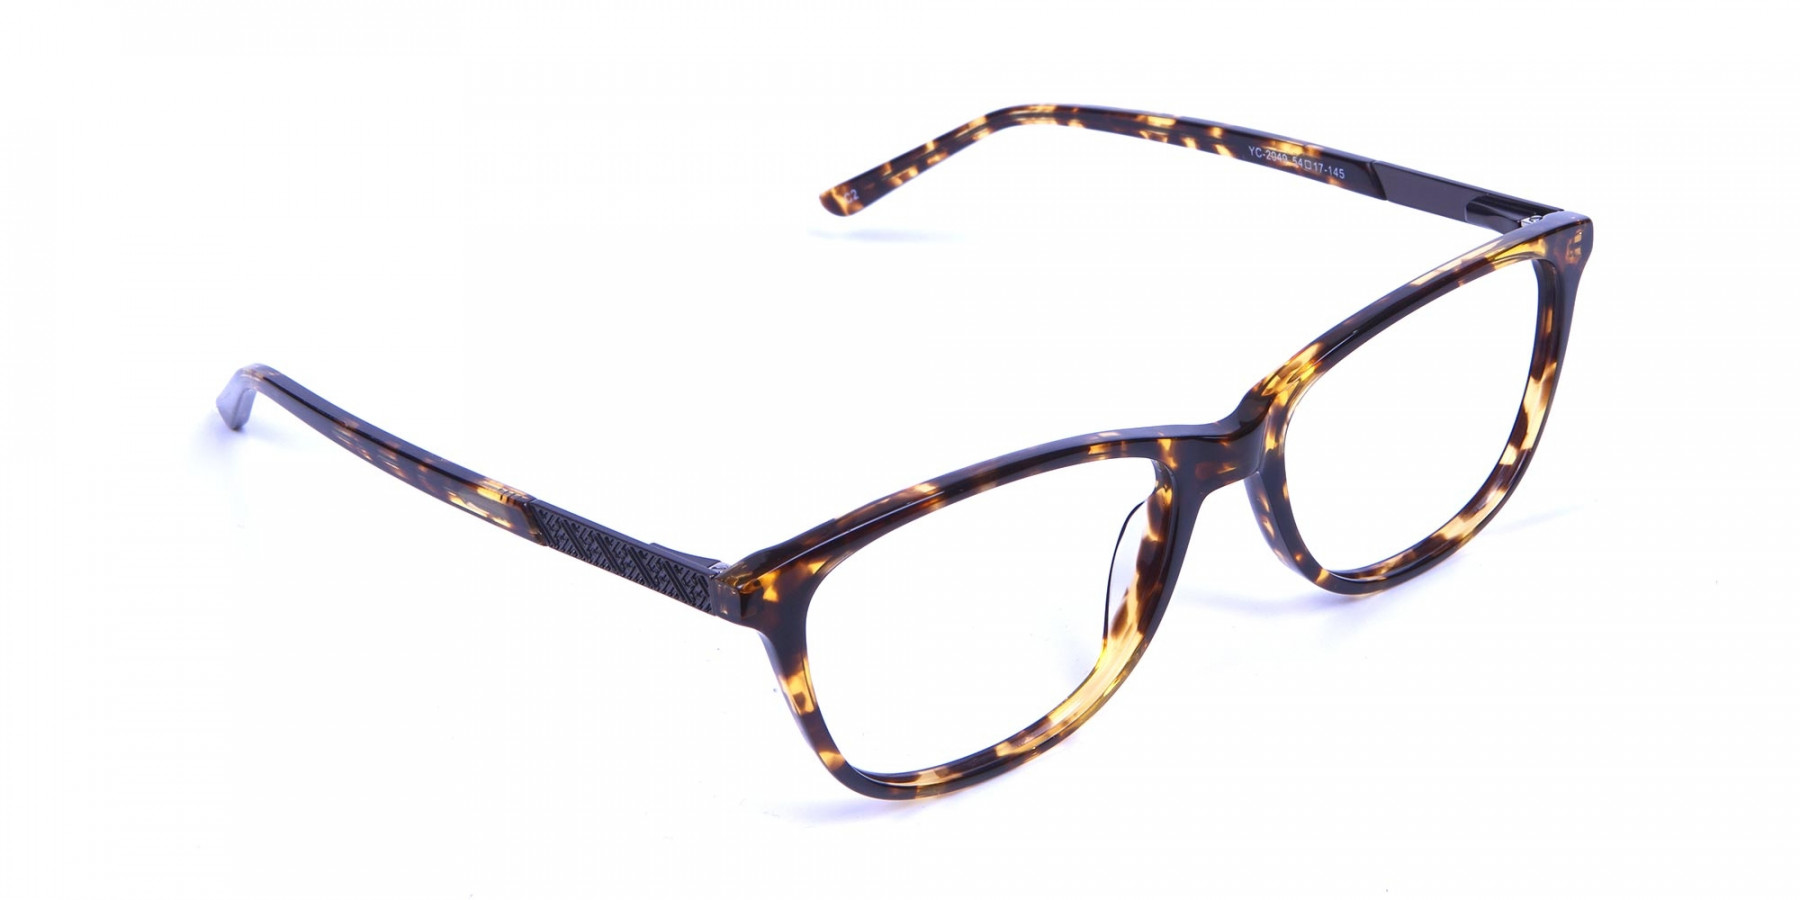 Warm-toned Glasses in Tortoiseshell